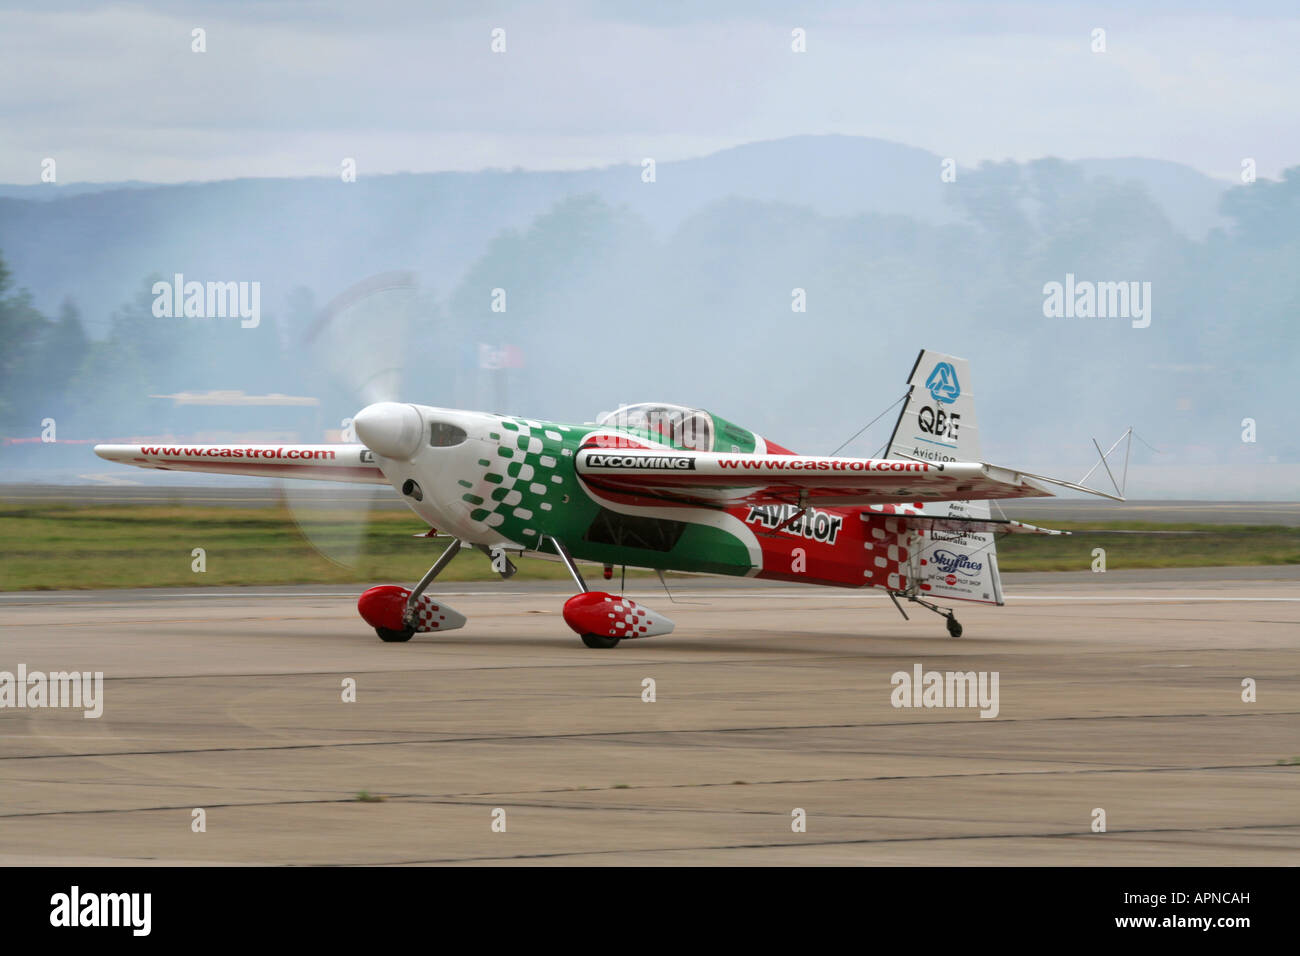 Zivko Edge 540 aerobatic display aircraft or stunt plane. Slow shutter speed used for prop blur. - Stock Image